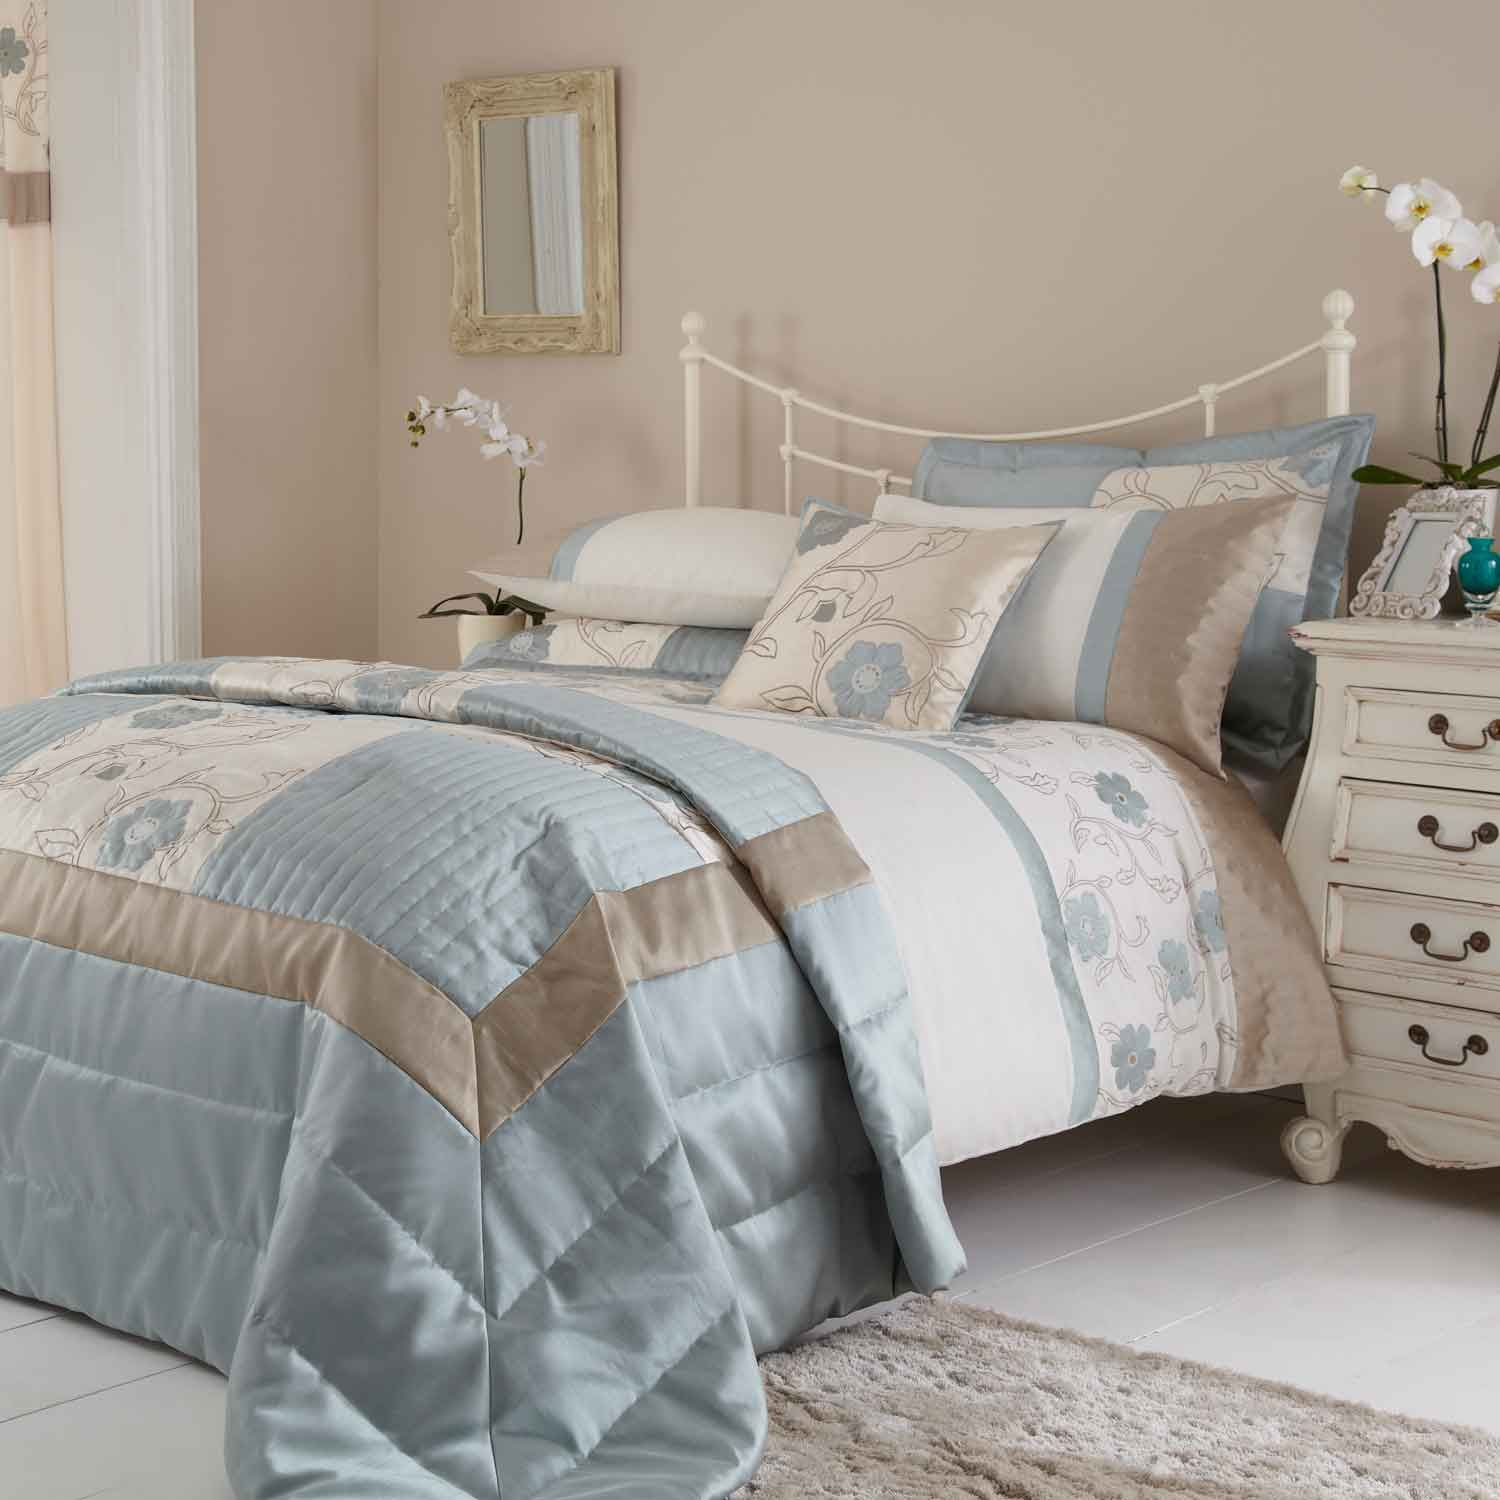 Bedroom Designs Duck Egg Blue duck egg blue and brown bedding for couple bedroom decorating